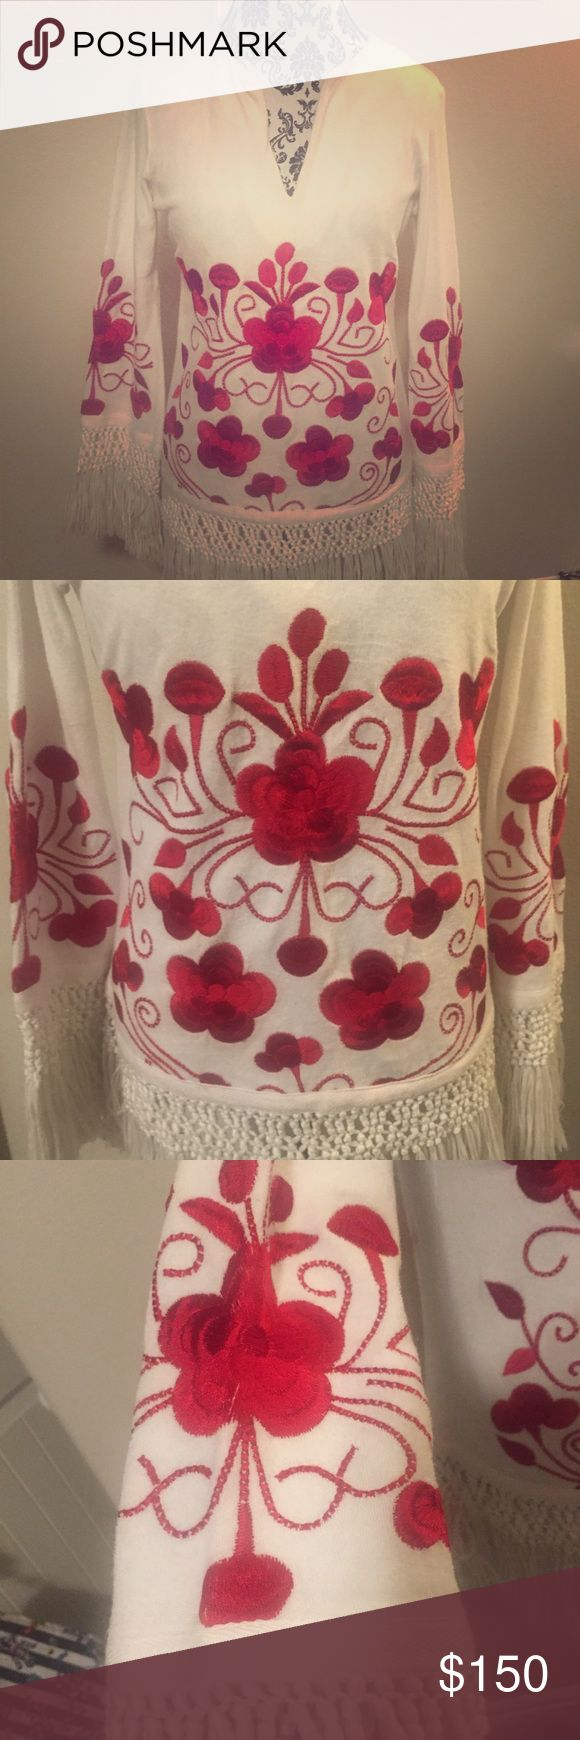 """Tory Burch Embroidered Fringed Top Beautiful 100% Cotton vneck terry cloth fringed top. Perfect as a cover up. Deep bold red embroidered floral design.  Measurements: Bust: 40"""" around  Shoulder to Hem: 23"""". To Fringe opening: 28"""" Sleeve: 19"""" to Hem. To fringe opening: 25"""" Tory Burch Tops Tunics"""